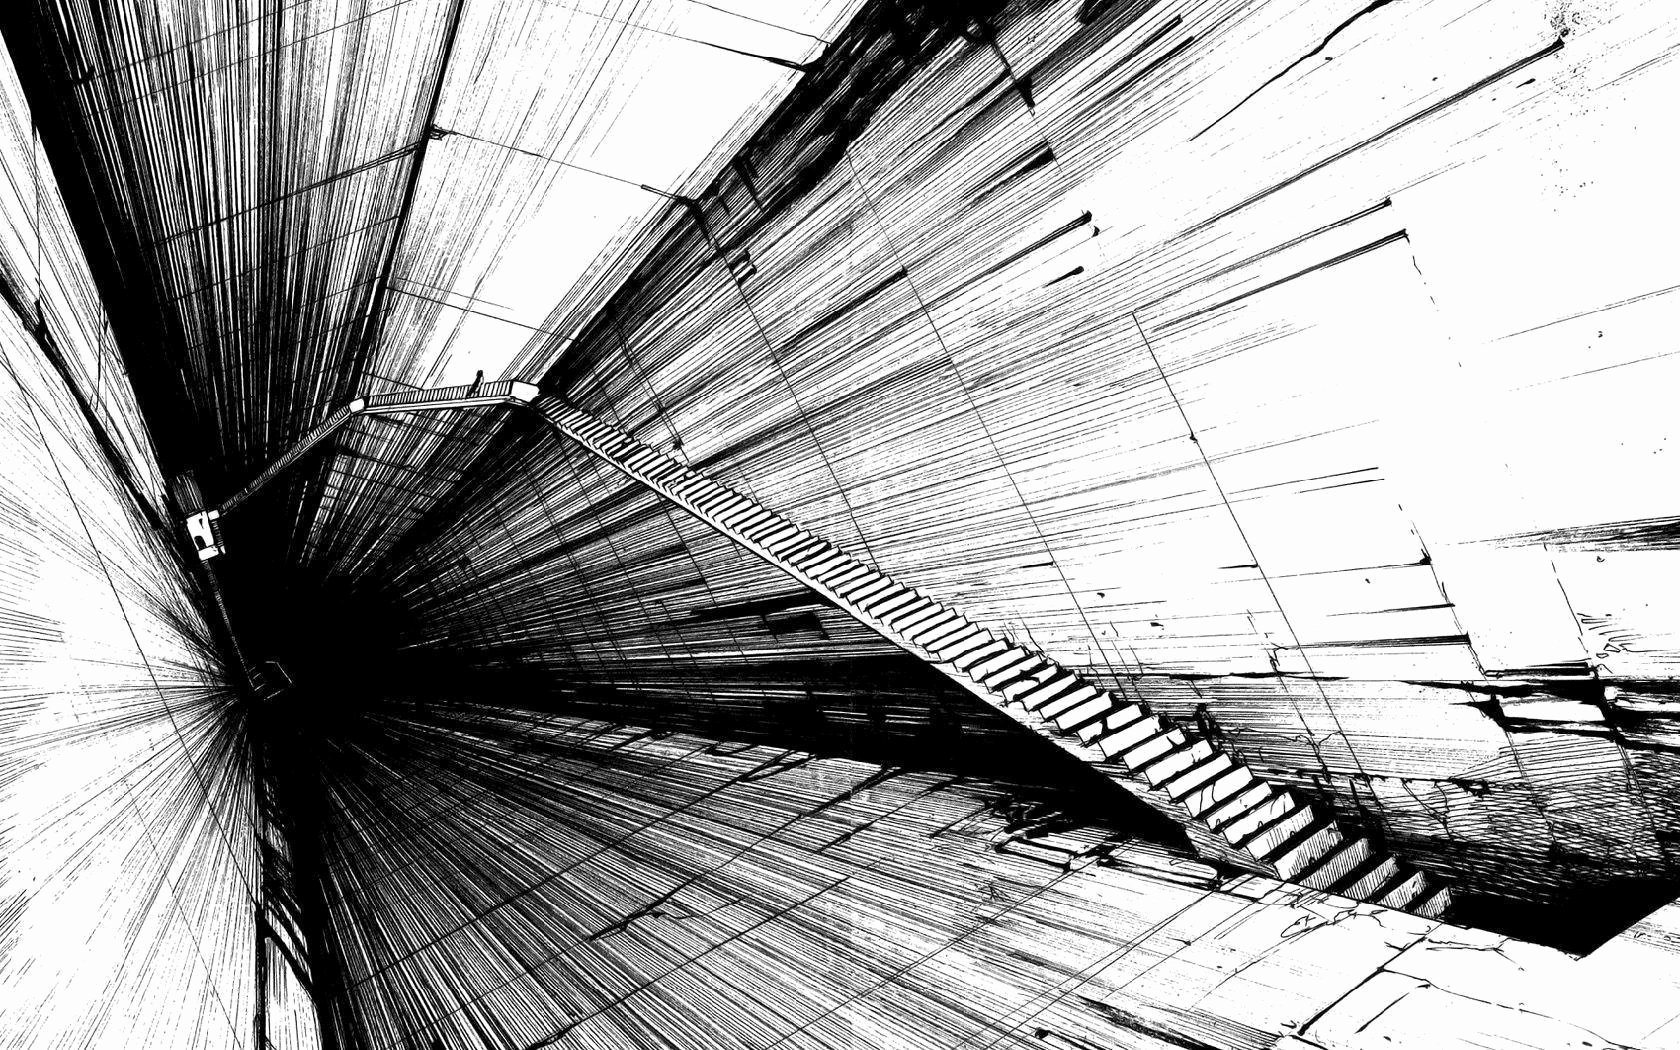 Black and White Abstract Artwork Lovely Black and White Abstract Wallpapers Wallpaper Cave